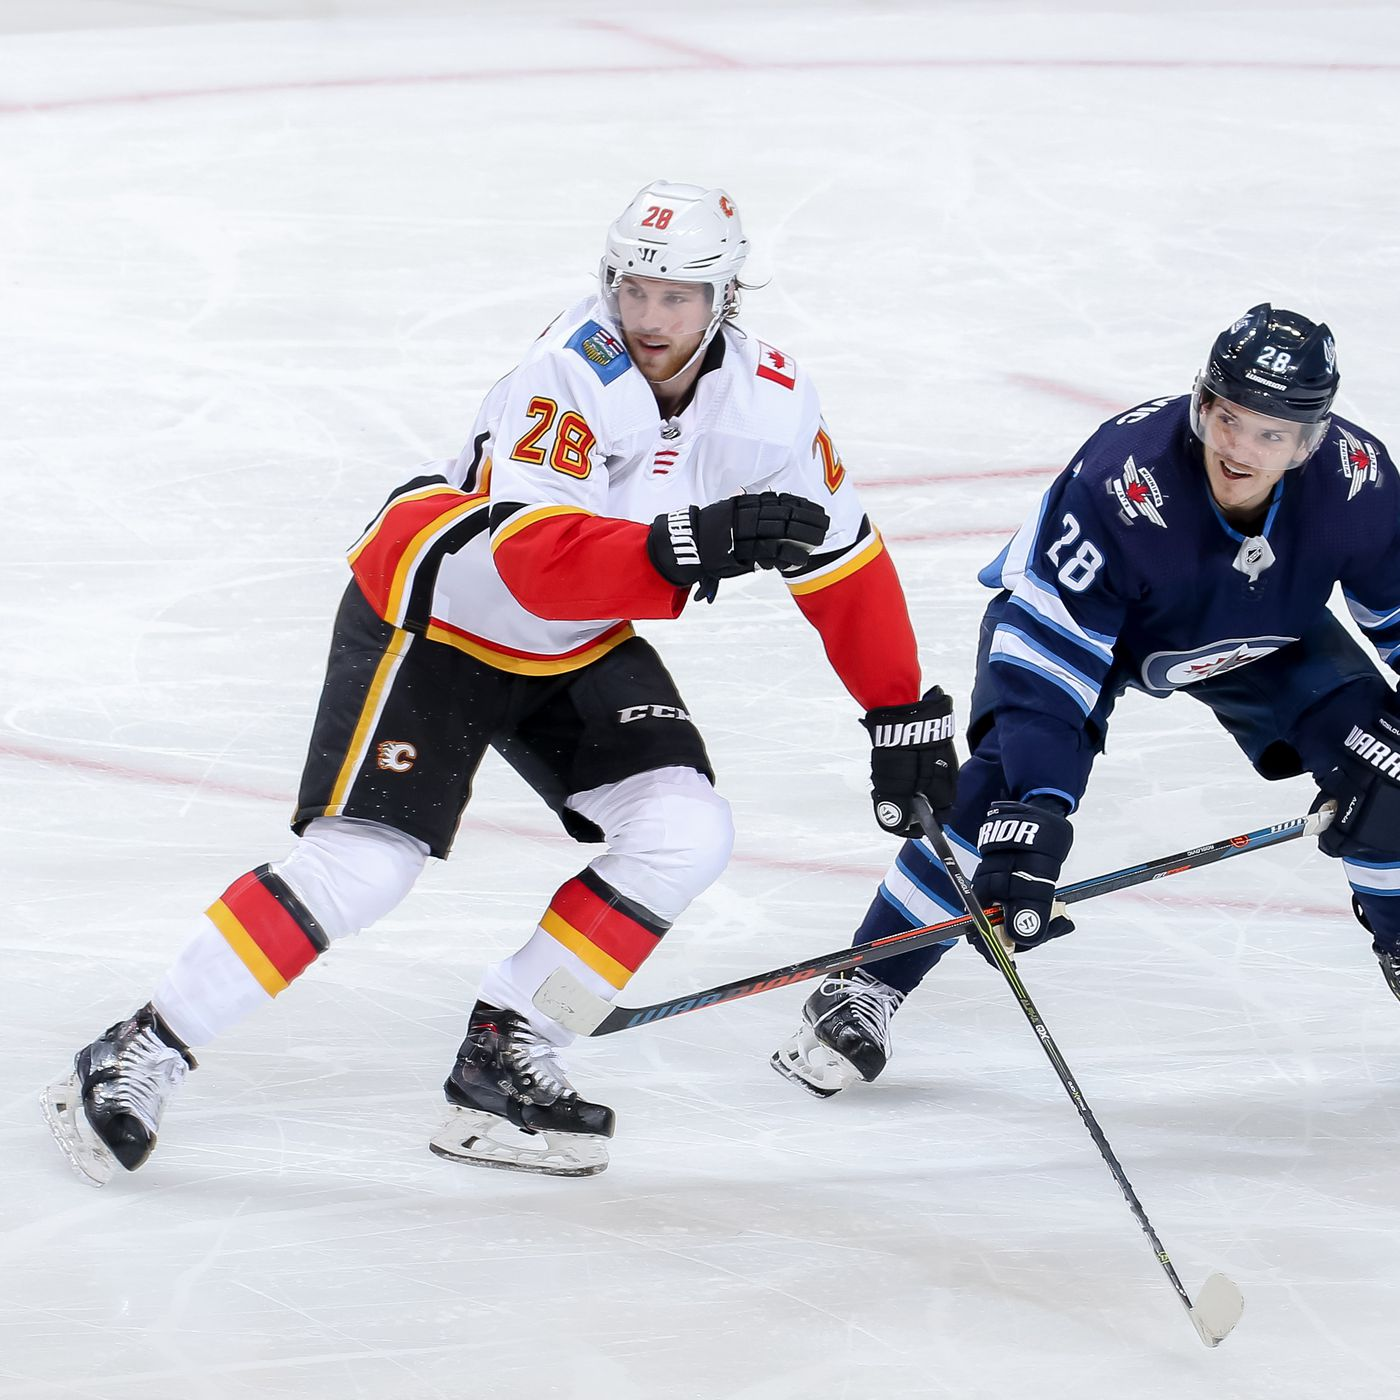 Preview Game 1 Calgary Flames Vs Winnipeg Jets Matchsticks And Gasoline